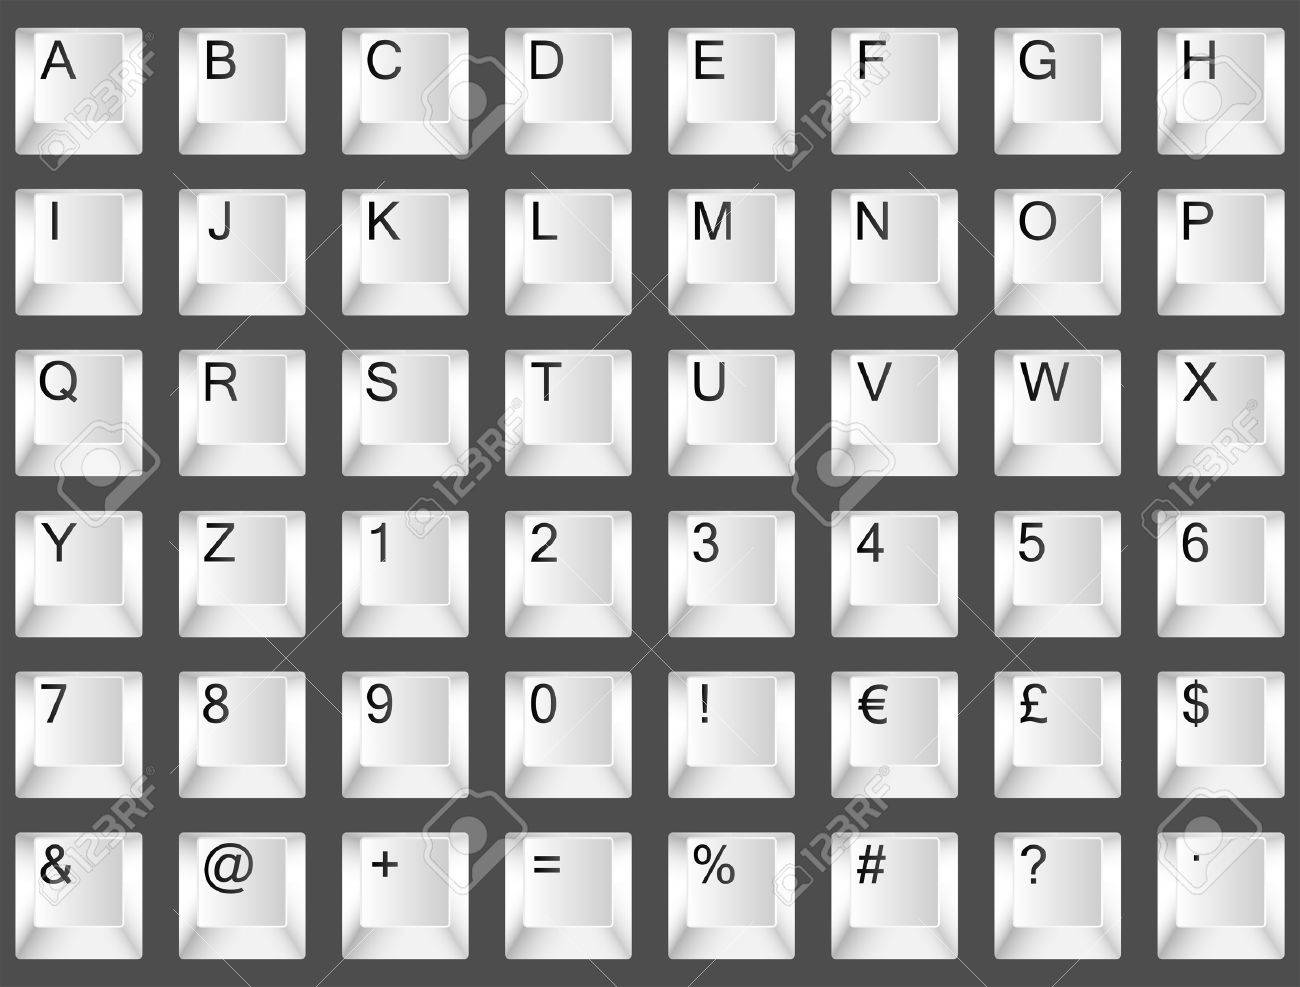 White Keyboard Font Letters A To Z Numbers 0 To 9 And Symbols